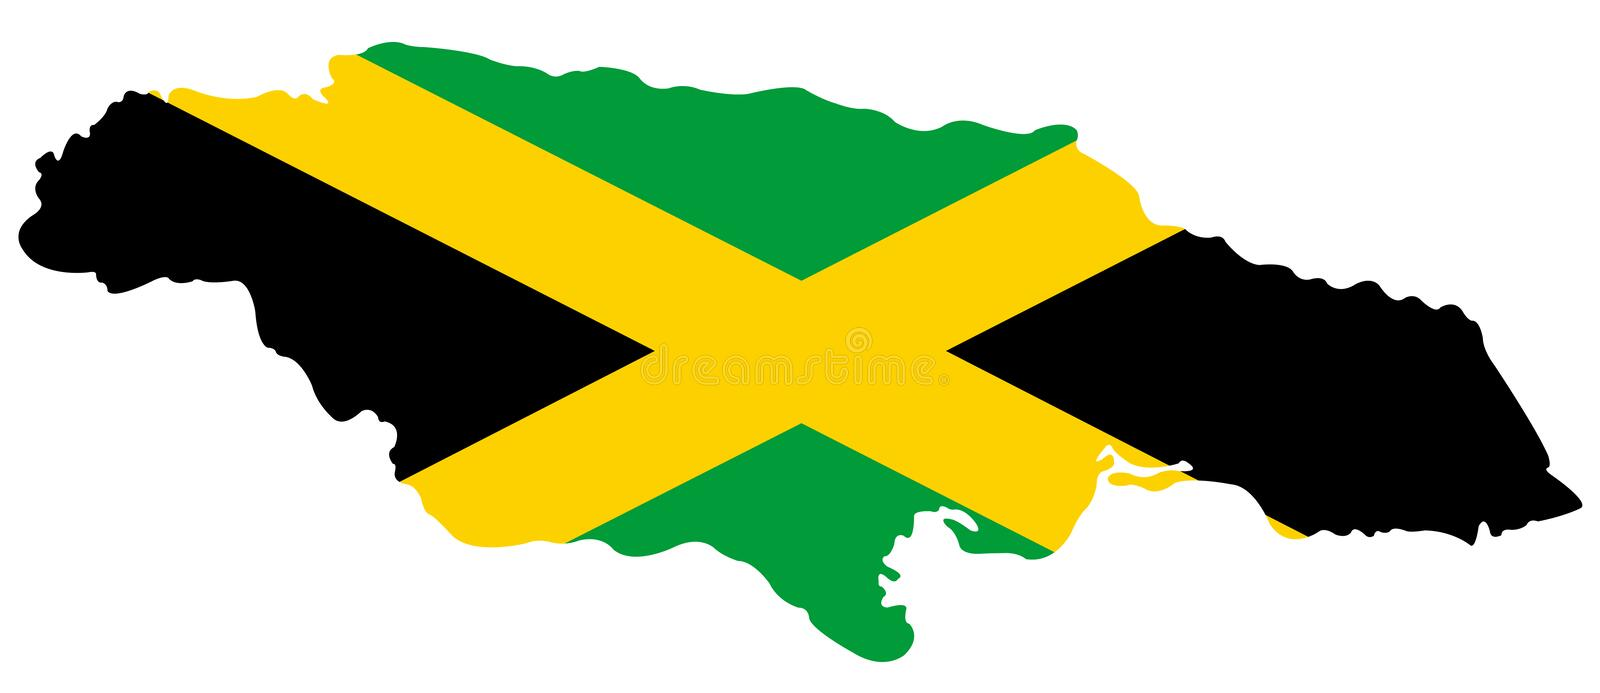 Jamaica flag and map - island country situated in the Caribbean Sea. Vector file of Jamaica flag and map - island country situated in the Caribbean Sea stock illustration